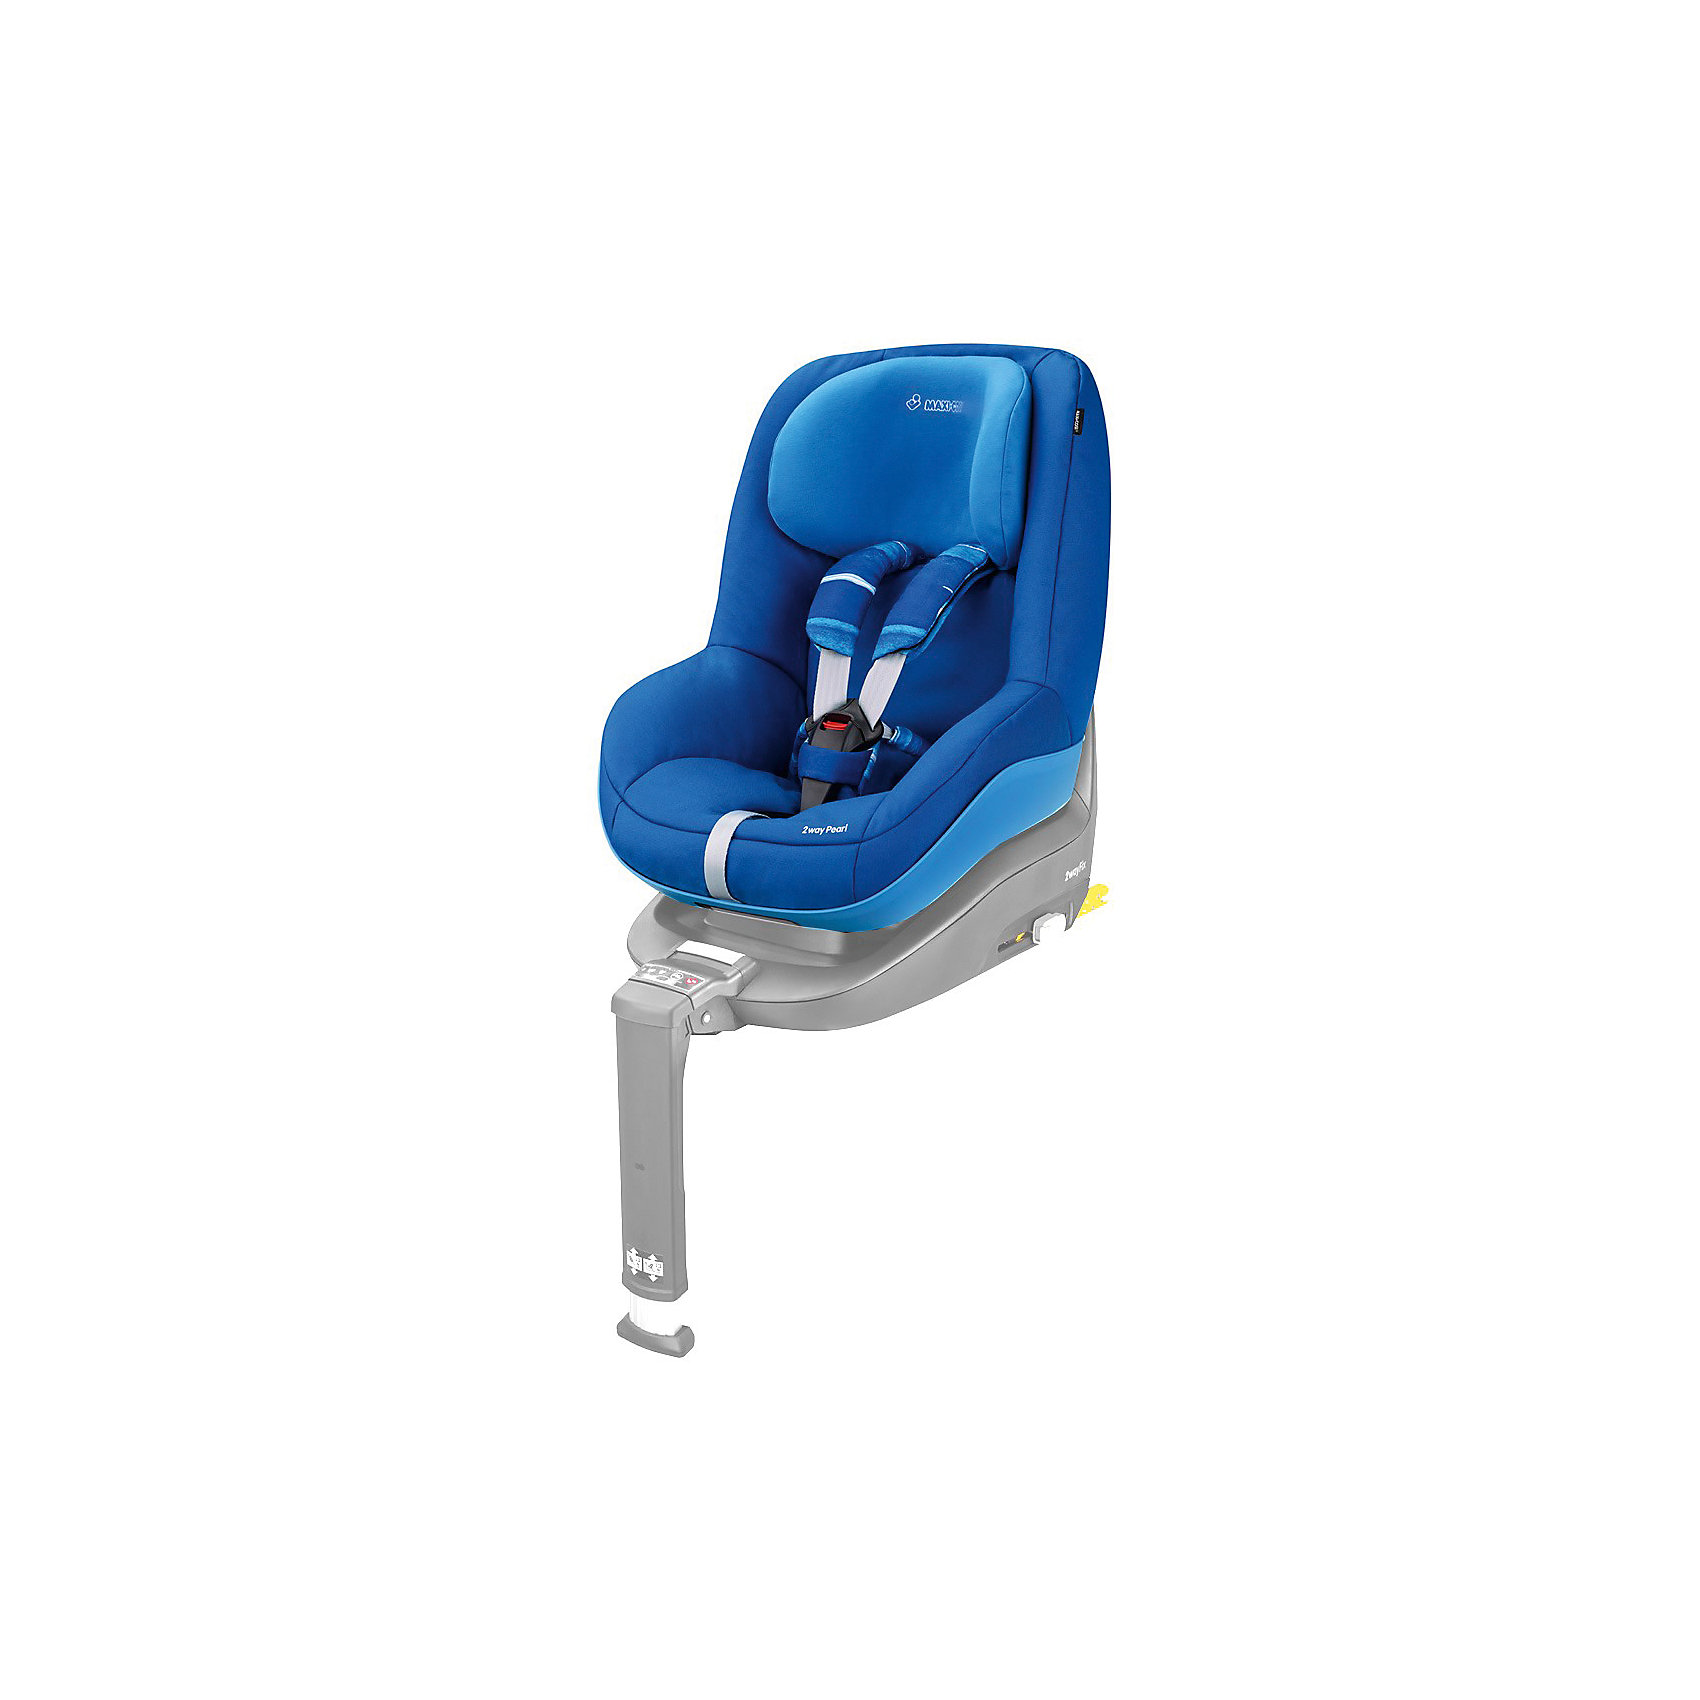 Maxi Cosi Автокресло Maxi-Cosi 2wayPearl 9-18 кг, Watercolor Blue